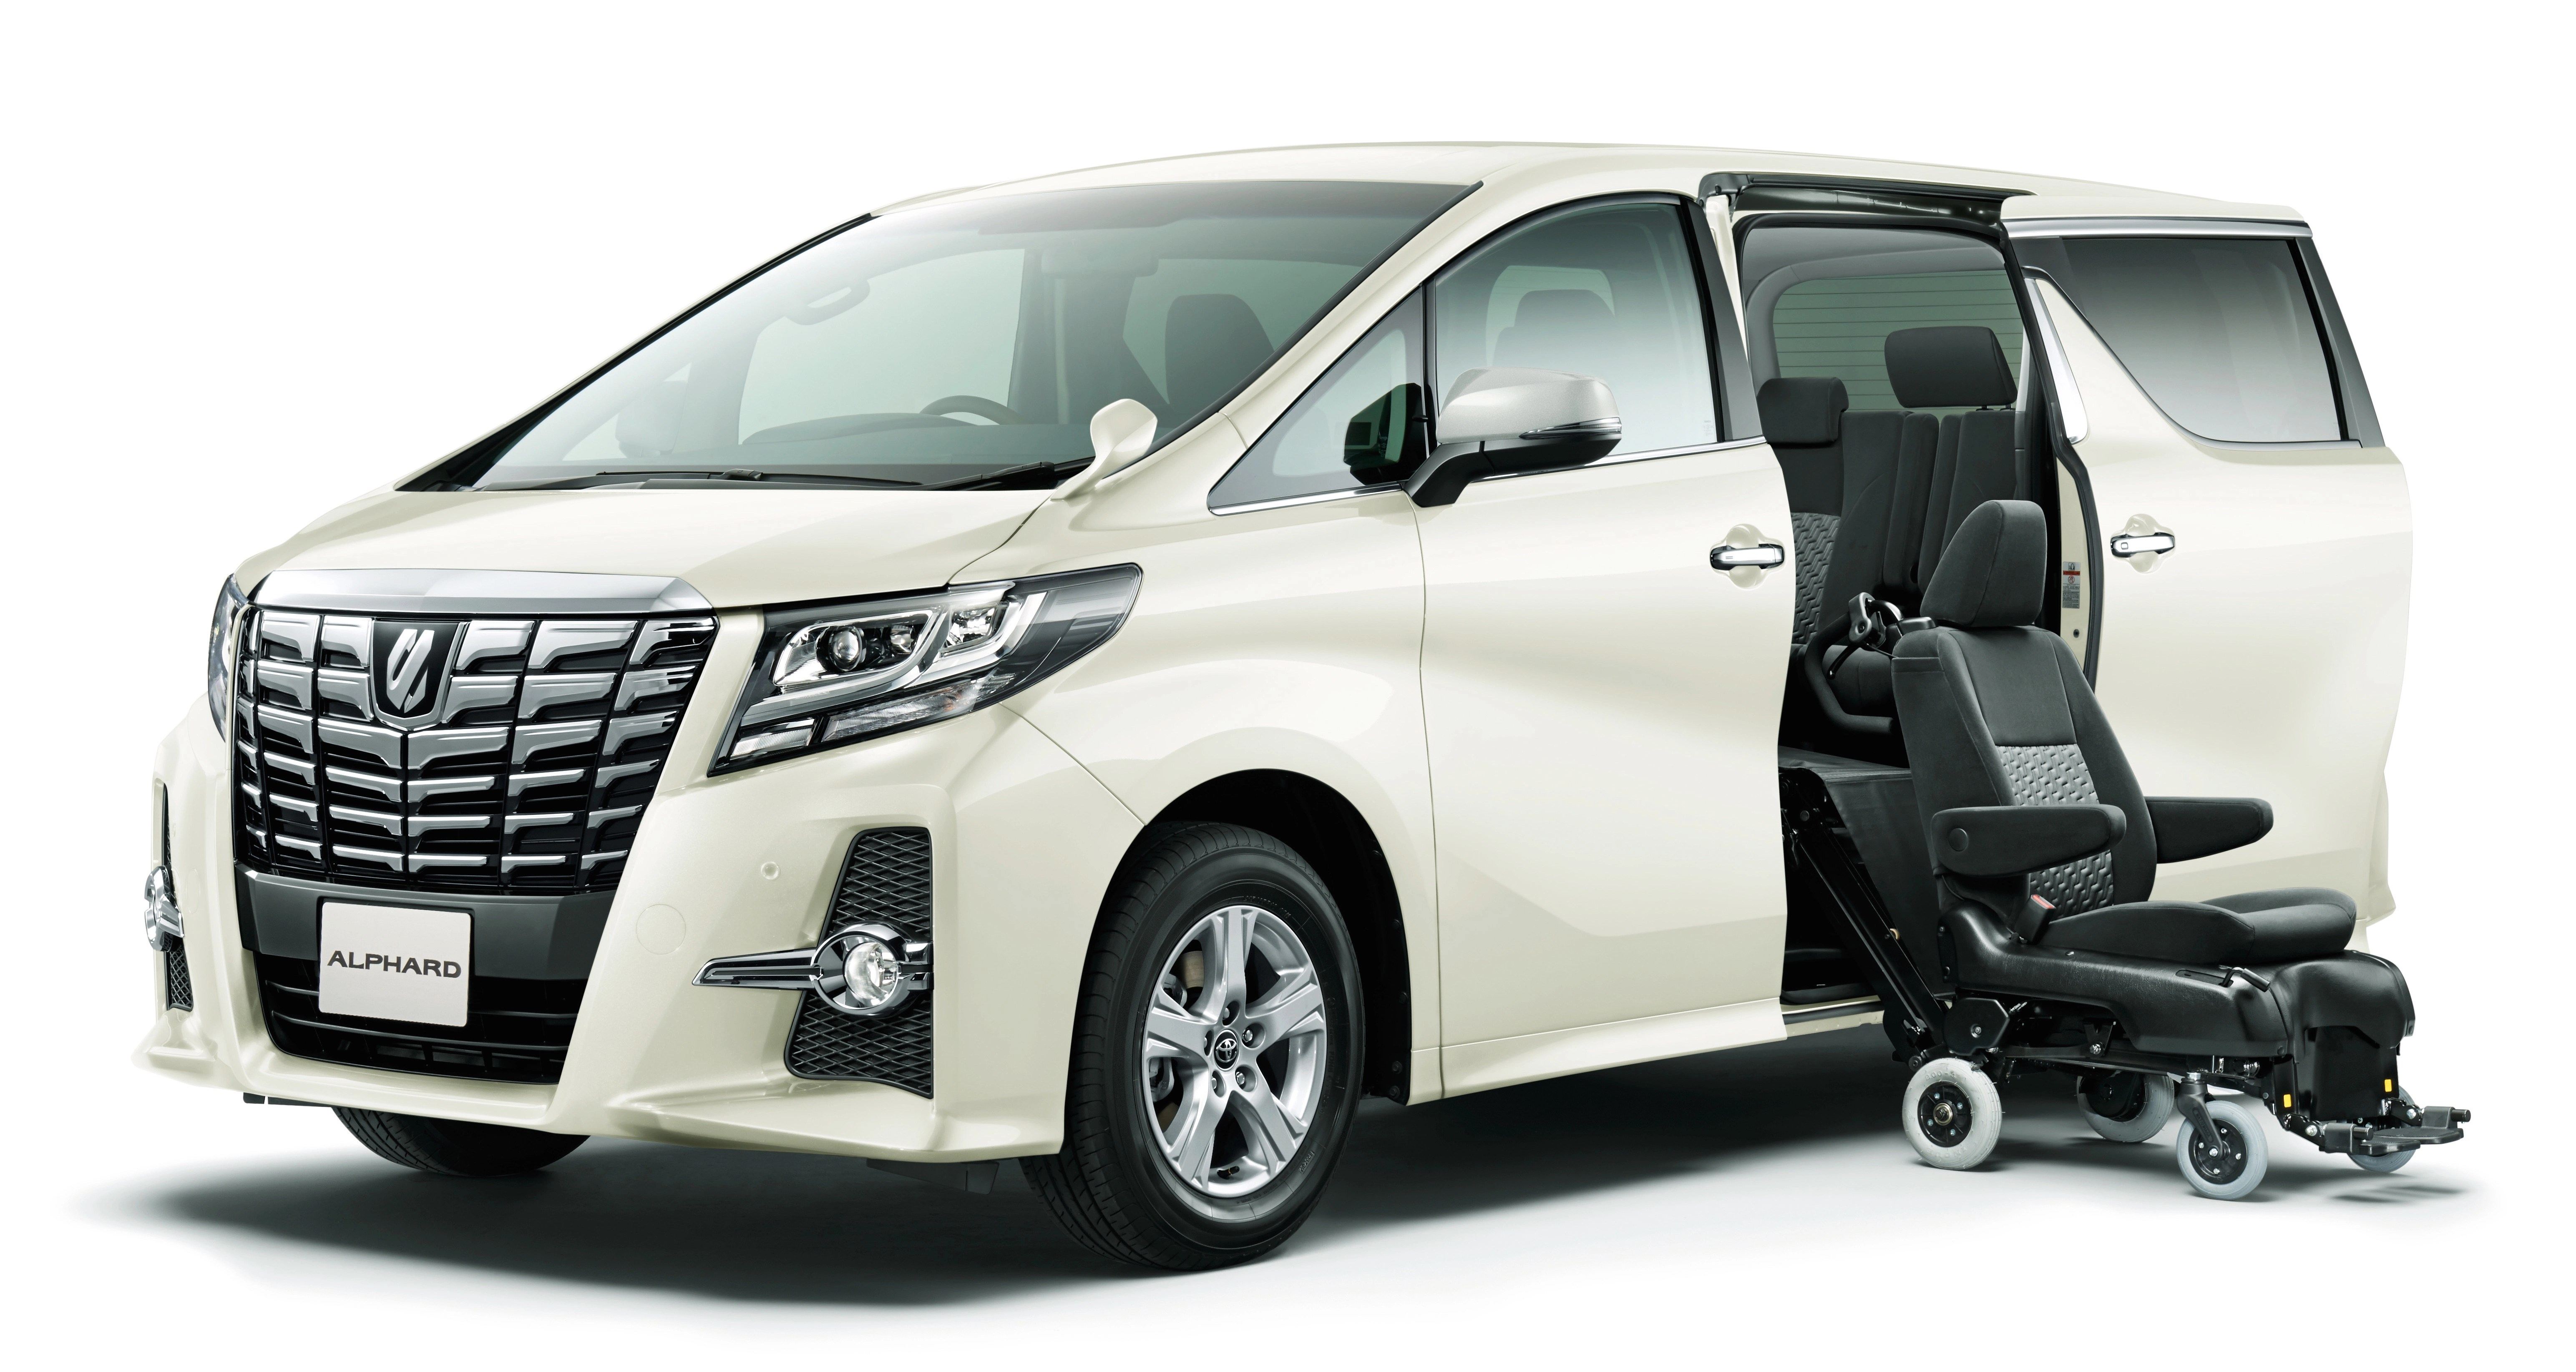 all new toyota alphard 2018 indonesia camry commercial song 2015 and vellfire unveiled  full details